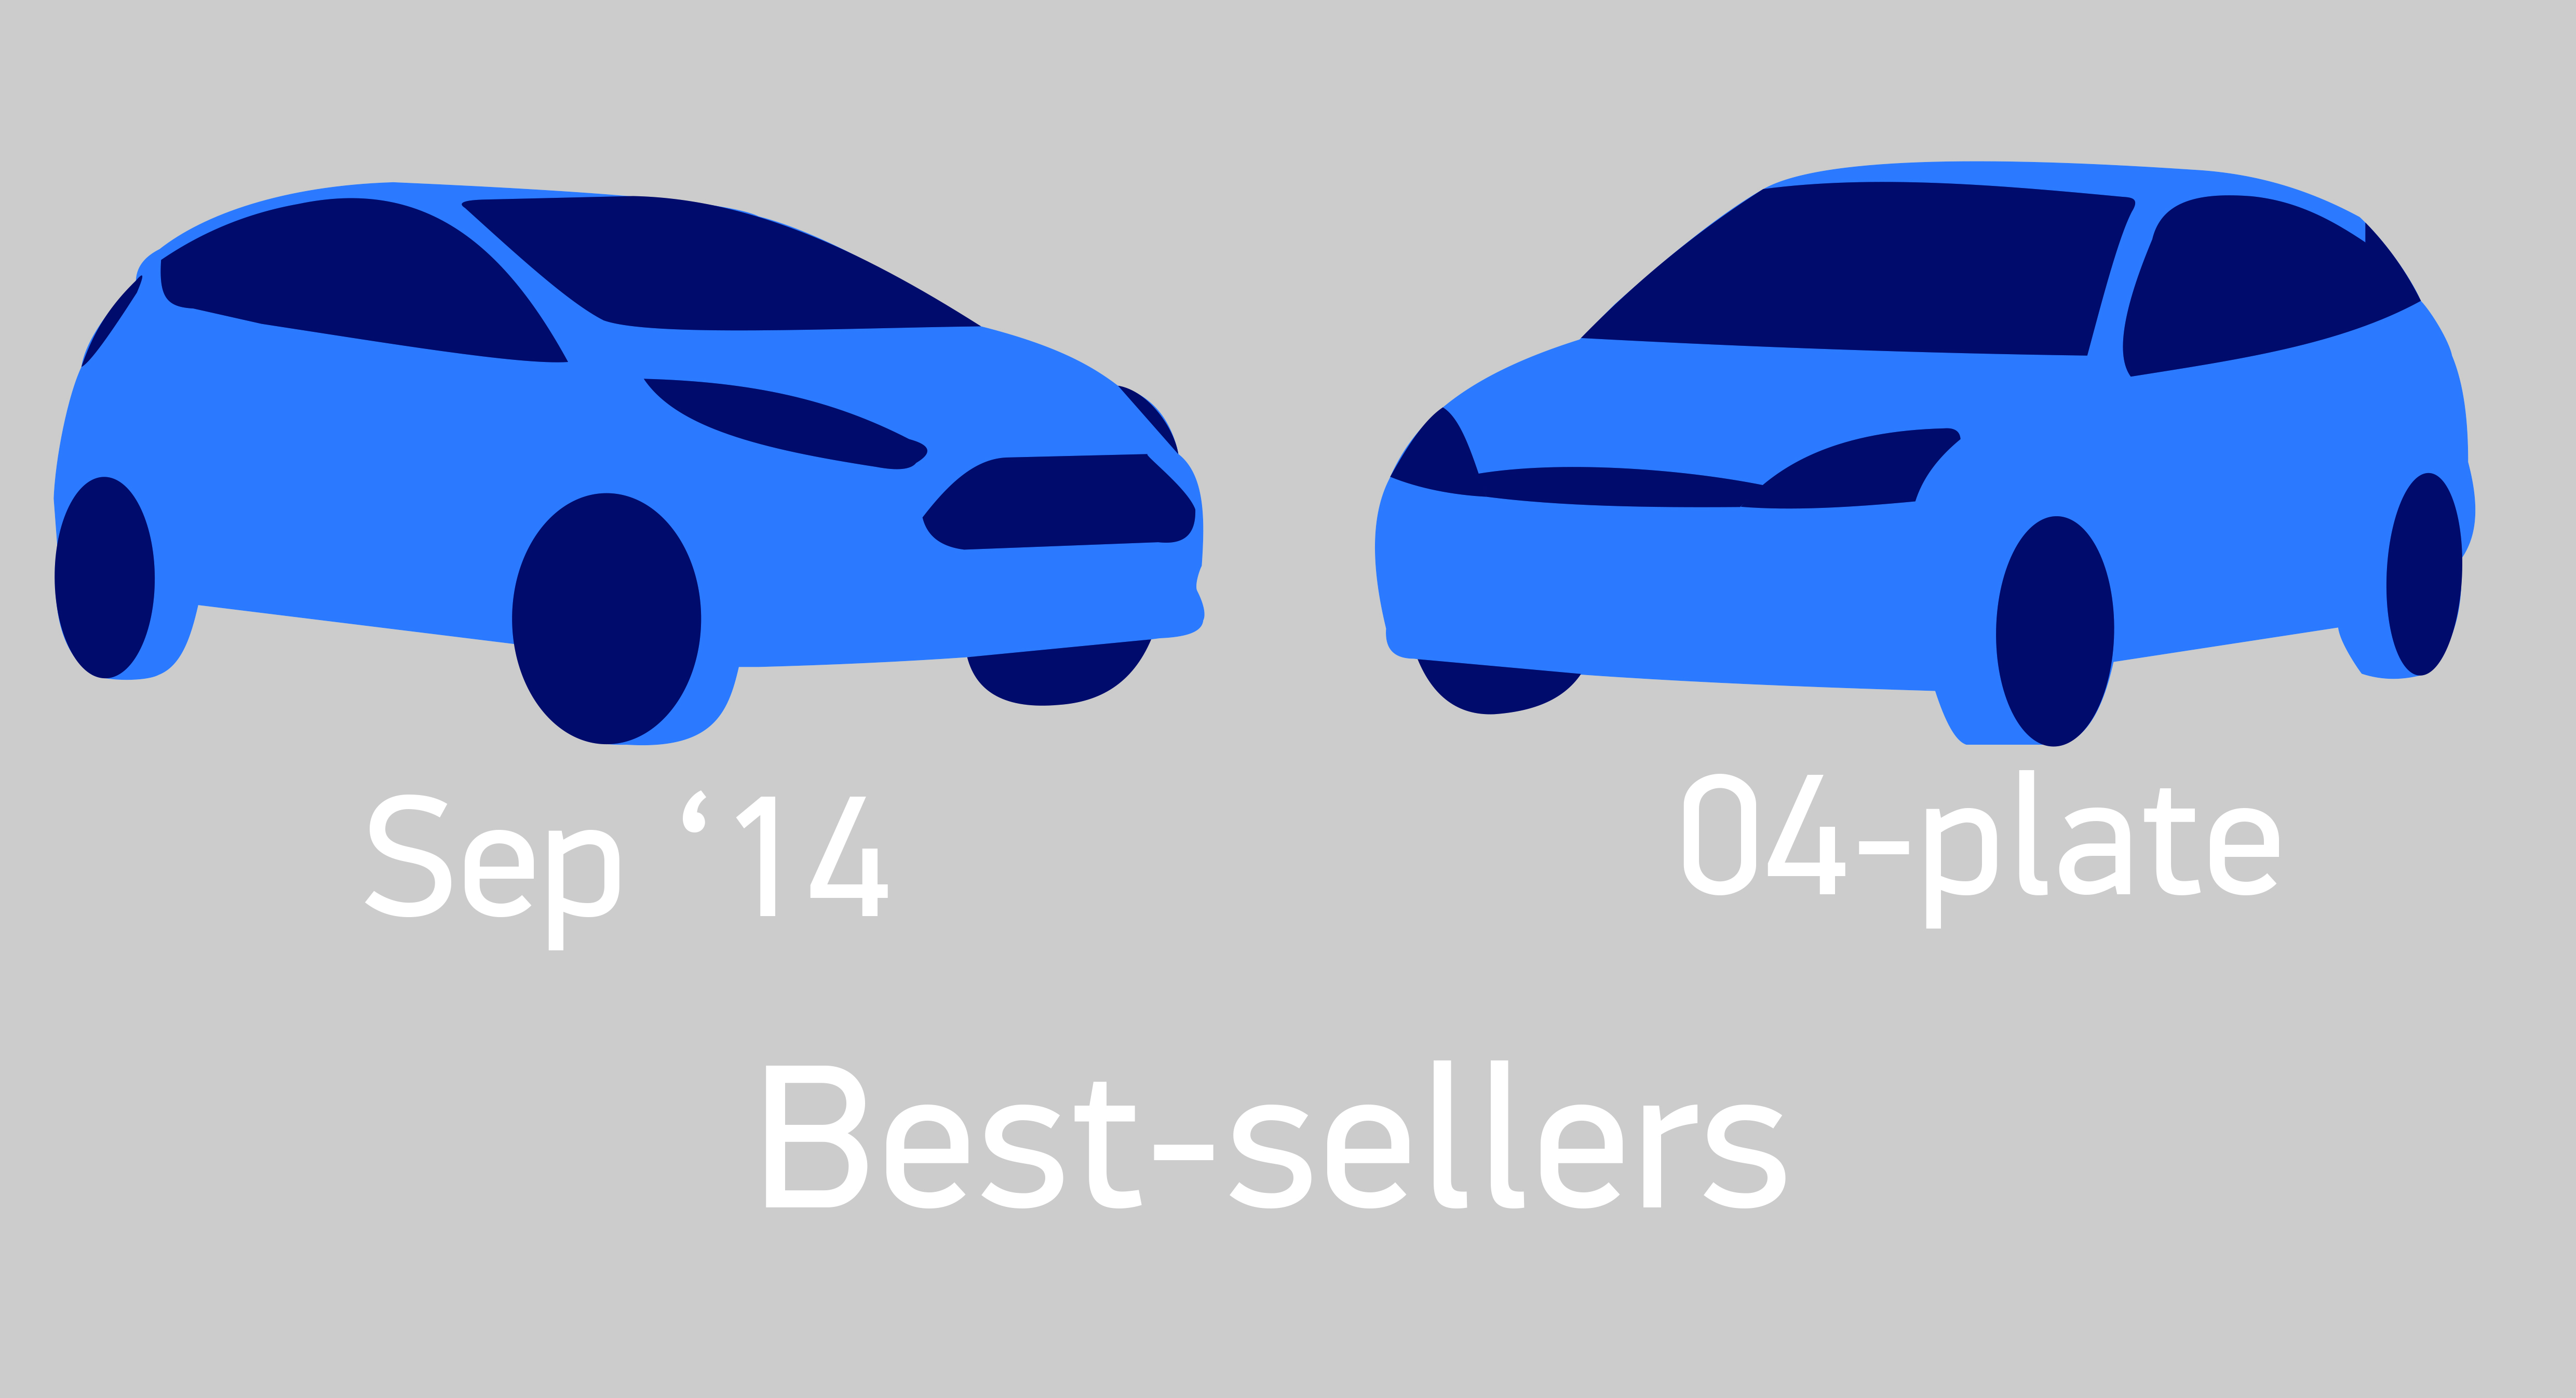 Best-selling cars 04-plate vs 2014